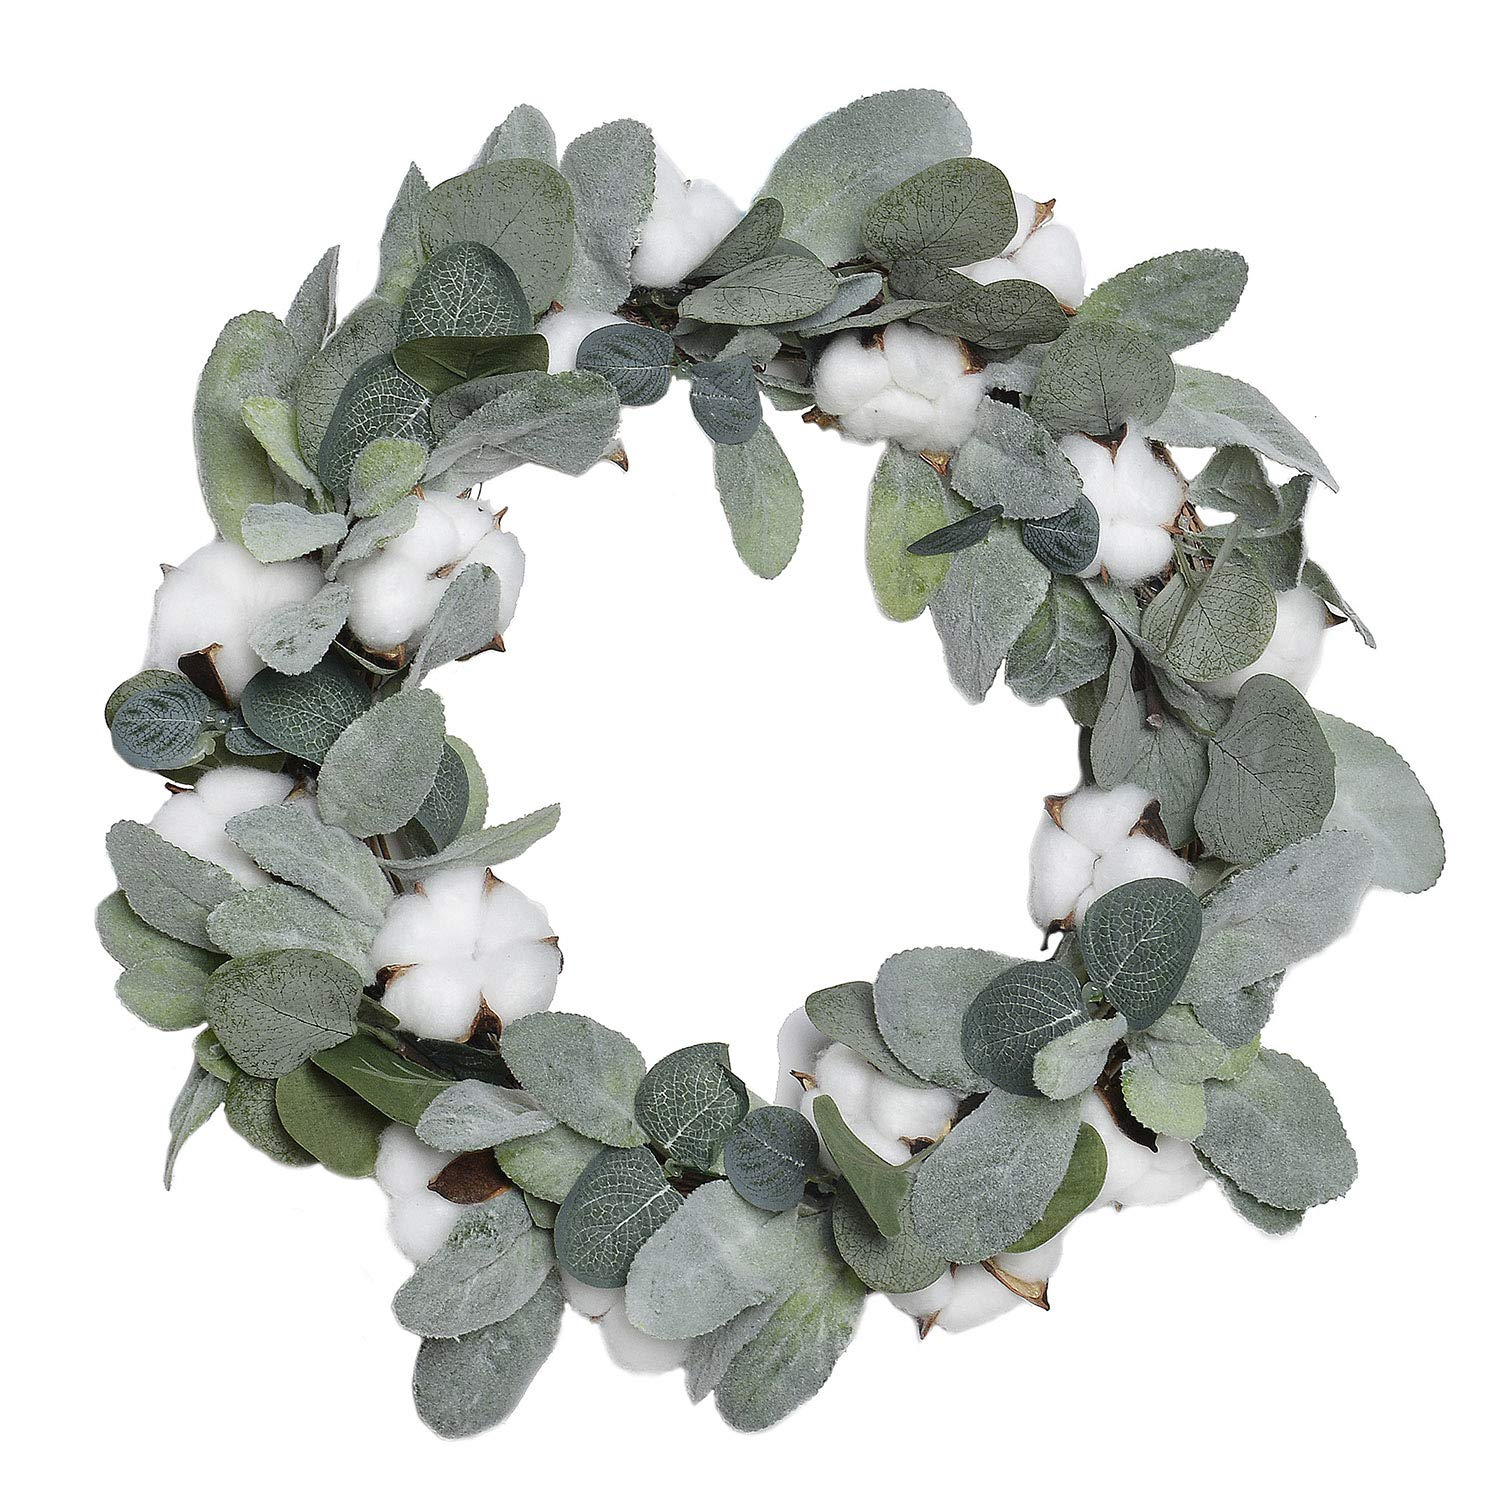 FAVOWREATH 2018 Vitality Series FAVO-W105 Handmade 14 inch Laurel/Eucalyptus Leaf,Cotton Grapevine Wreath for Summer/Fall Festival Front Door/Wall/Fireplace Every Day Nearly Natural Home Hanger Decor